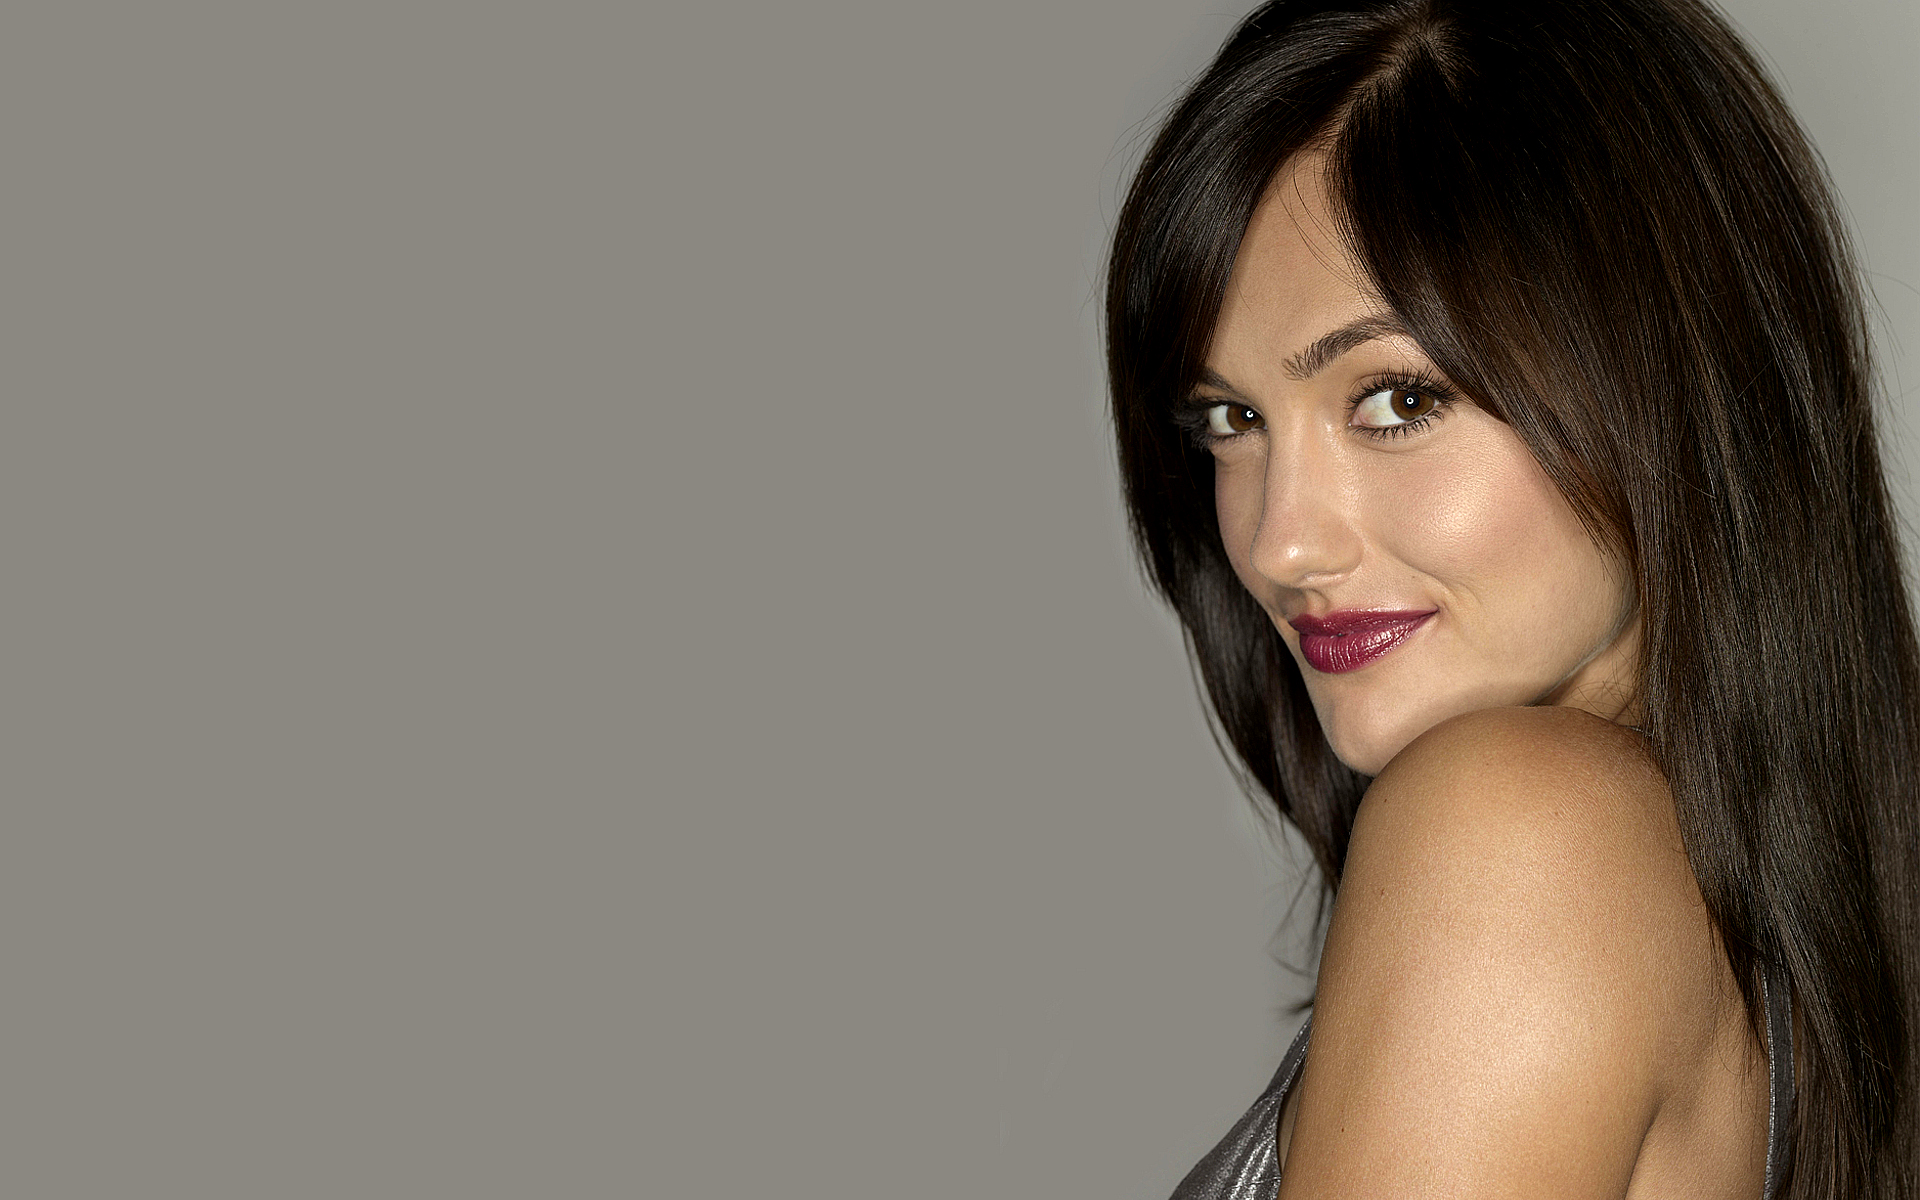 Beautiful Minka Kelly Wallpaper 1920x1200 18714